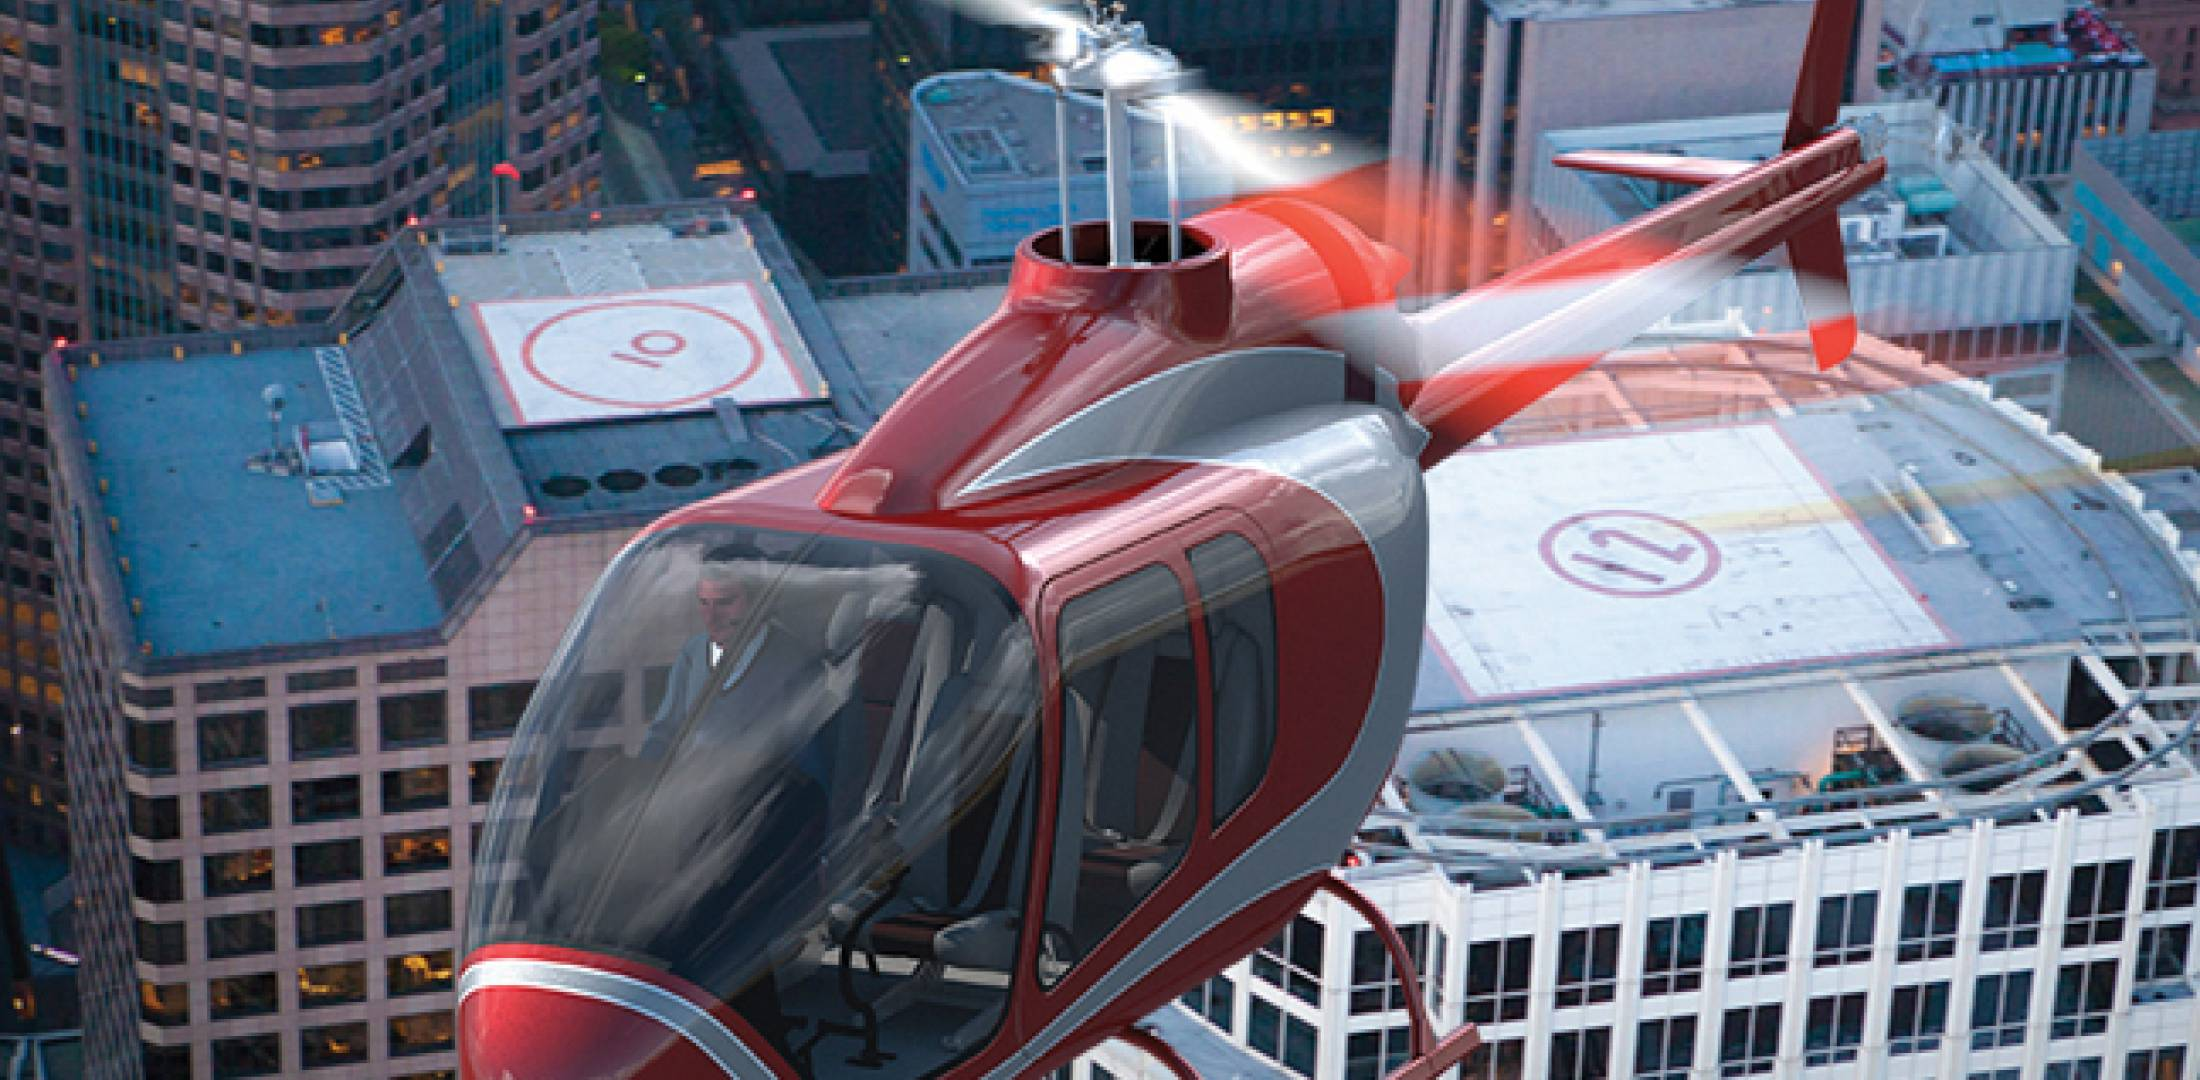 Bell announced the Short Light Single this years Paris Air Show and is looking toward a critical design review later this year, with flrst flight of the Turbomeca Arrius-powered helicopter expected to take place late next year, a relatively short development program.